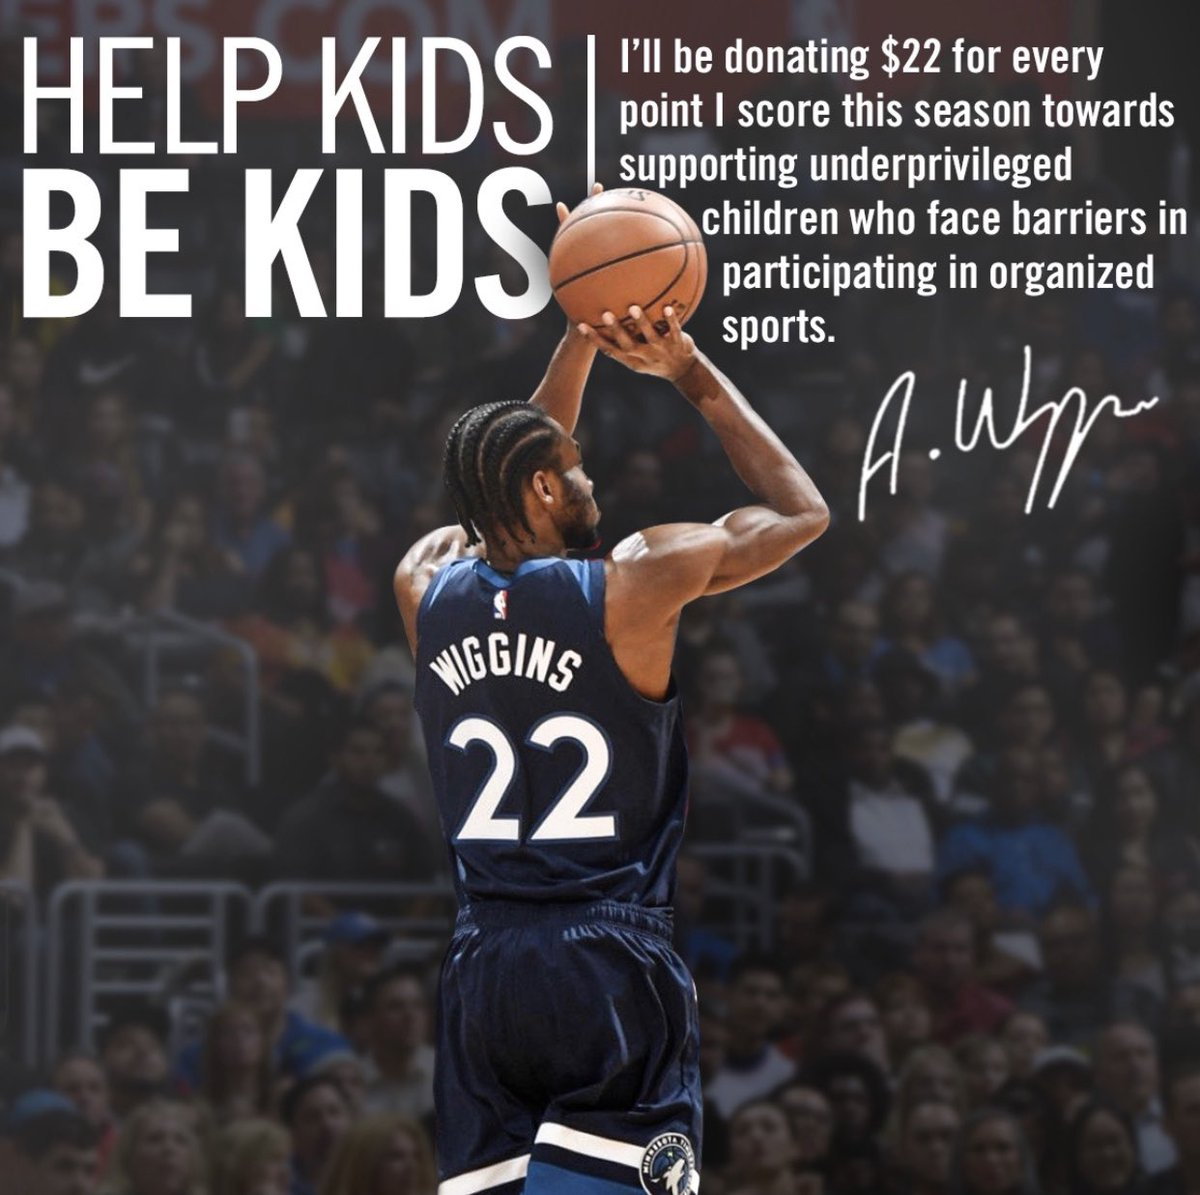 I'm proud to announce for the second year straight i'll be donating $22 for every point I score towards supporting underprivileged children who face barriers in participating in organized sports. The goal is and will always be to help kids be kids and play sports! https://t.co/PJHghnQBBv